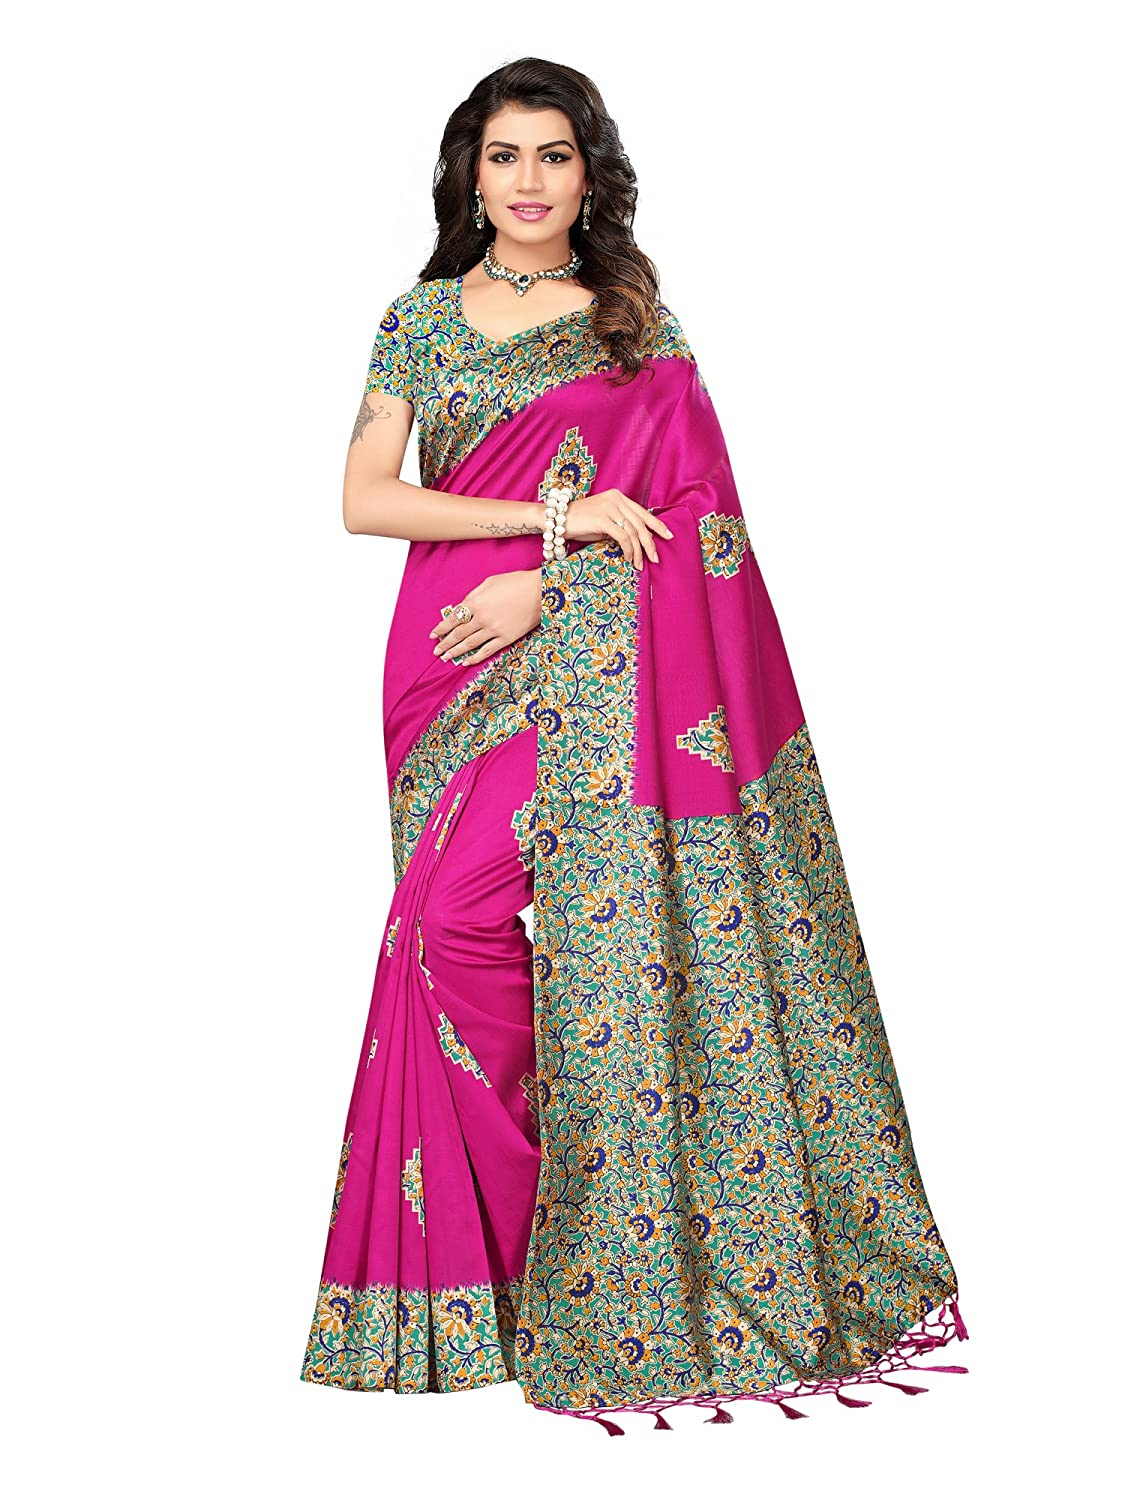 6c7c0809af9 Aybeez sarees combo offer below 500 rs saree party wear designer sarees  below 300 rupees sarees new collection 2018 party wear work sarees saree  for women ...